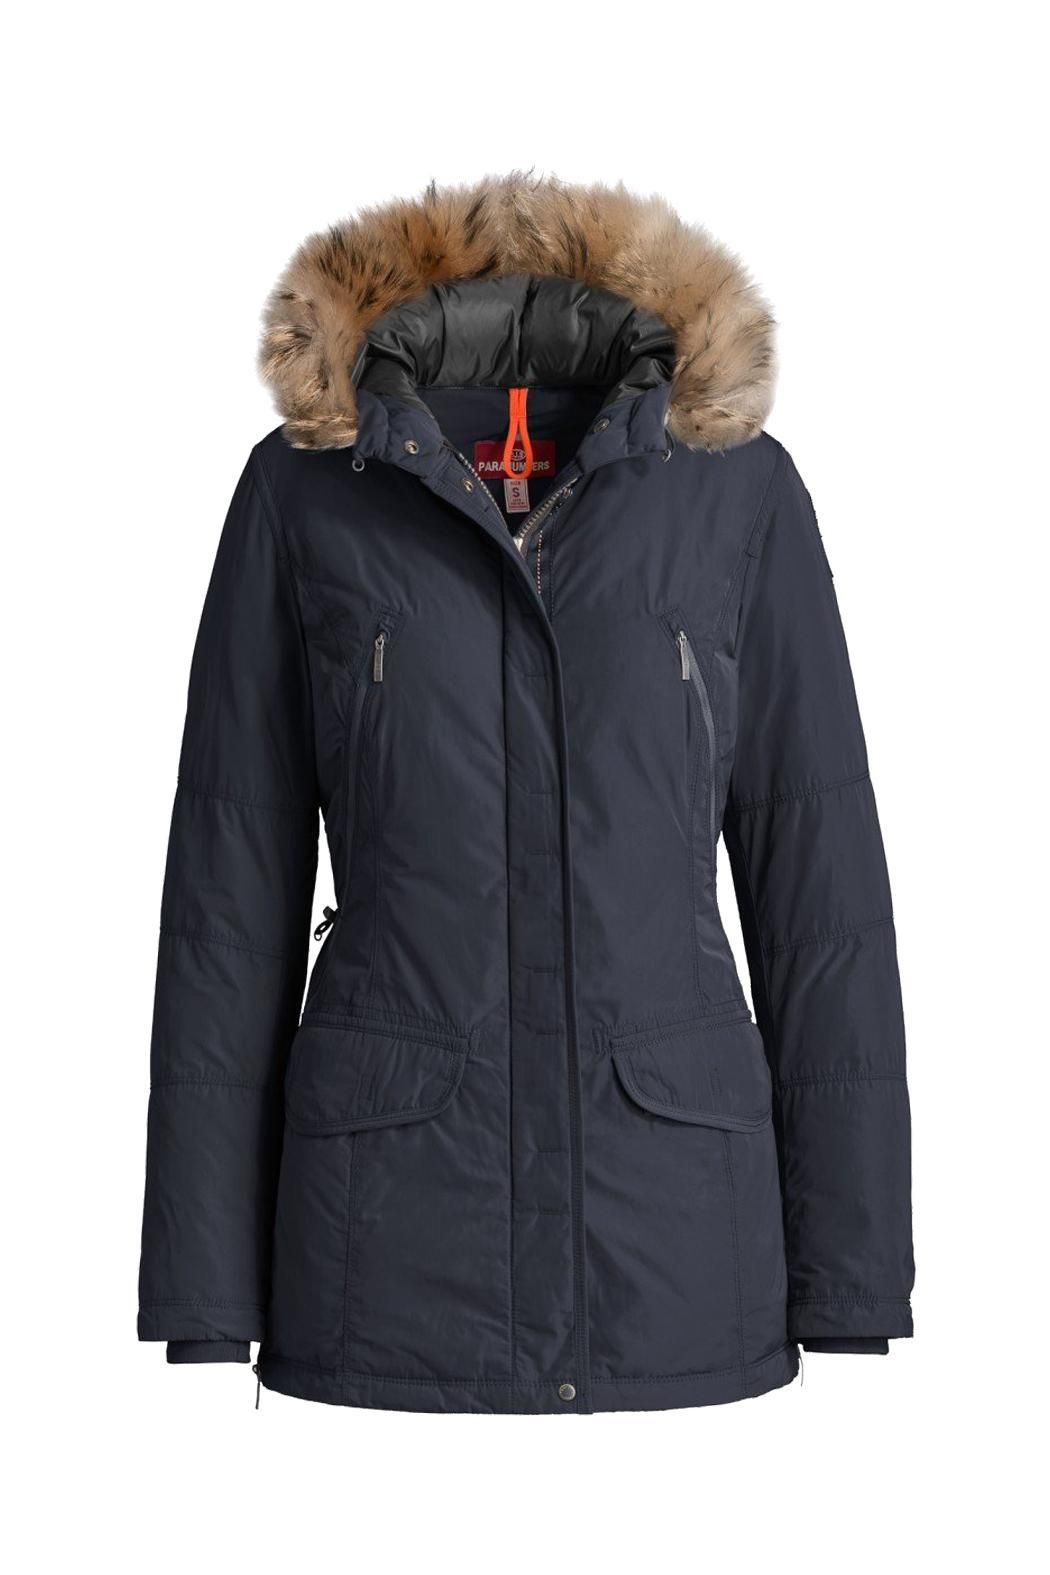 Parajumpers Lores Down Jacket